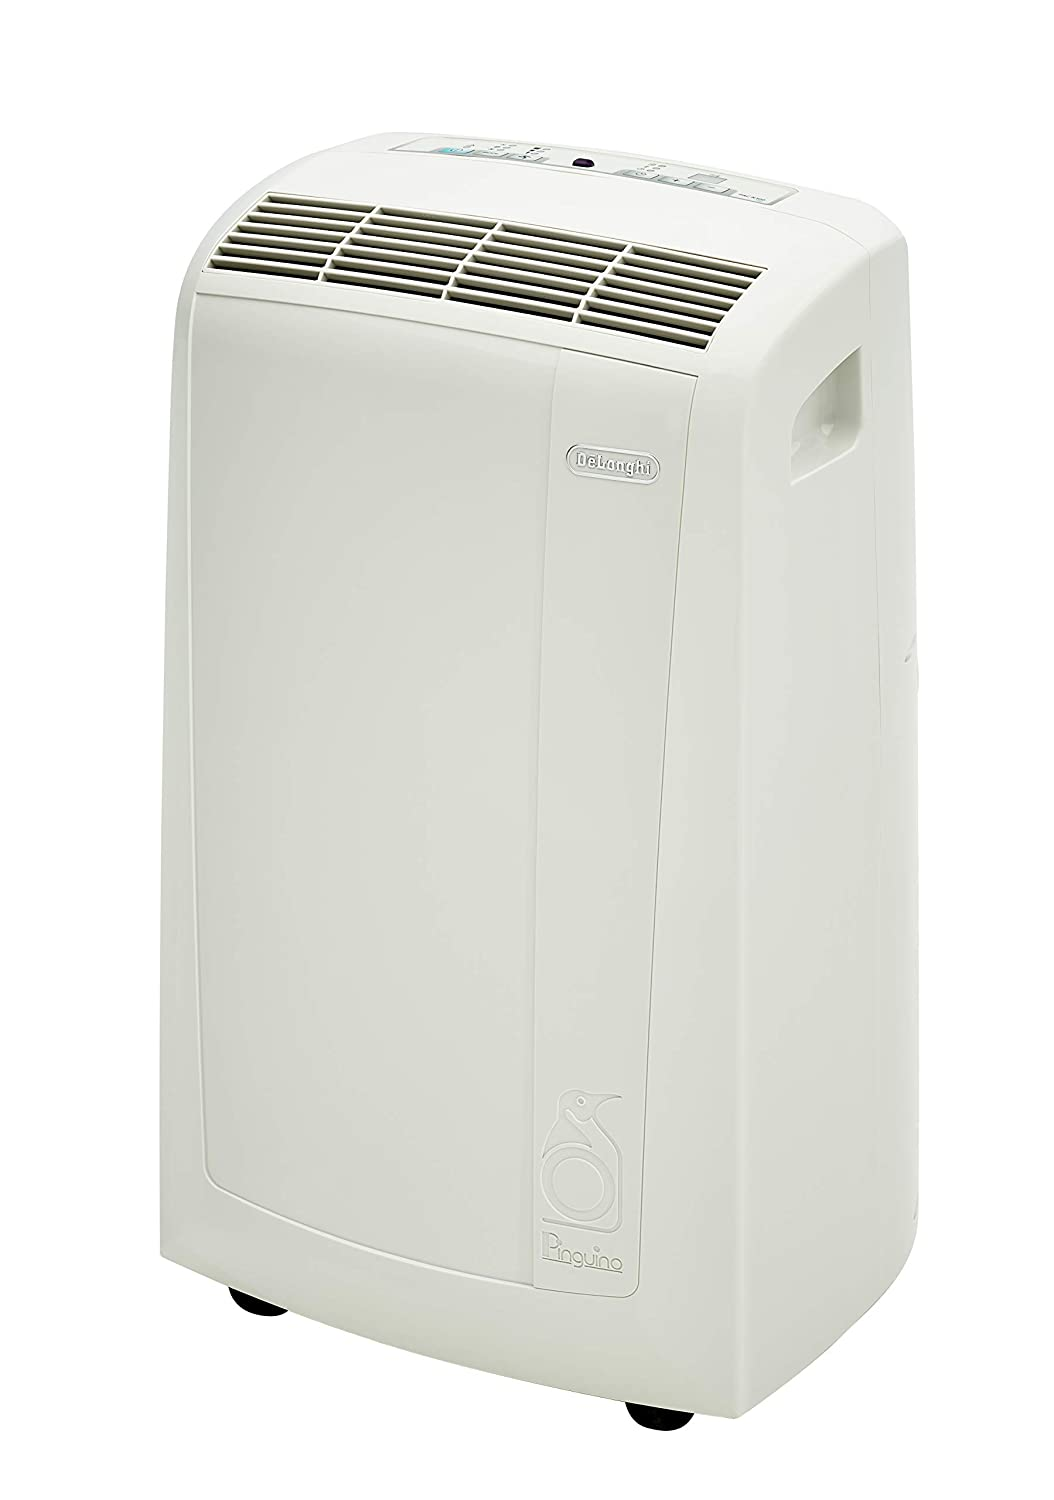 DeLonghi Pinguino 3-in-1 Portable Air Conditioner, Dehumidifier & Fan with Remote Control & Wheels, 400 sq. ft, Medium Room, White